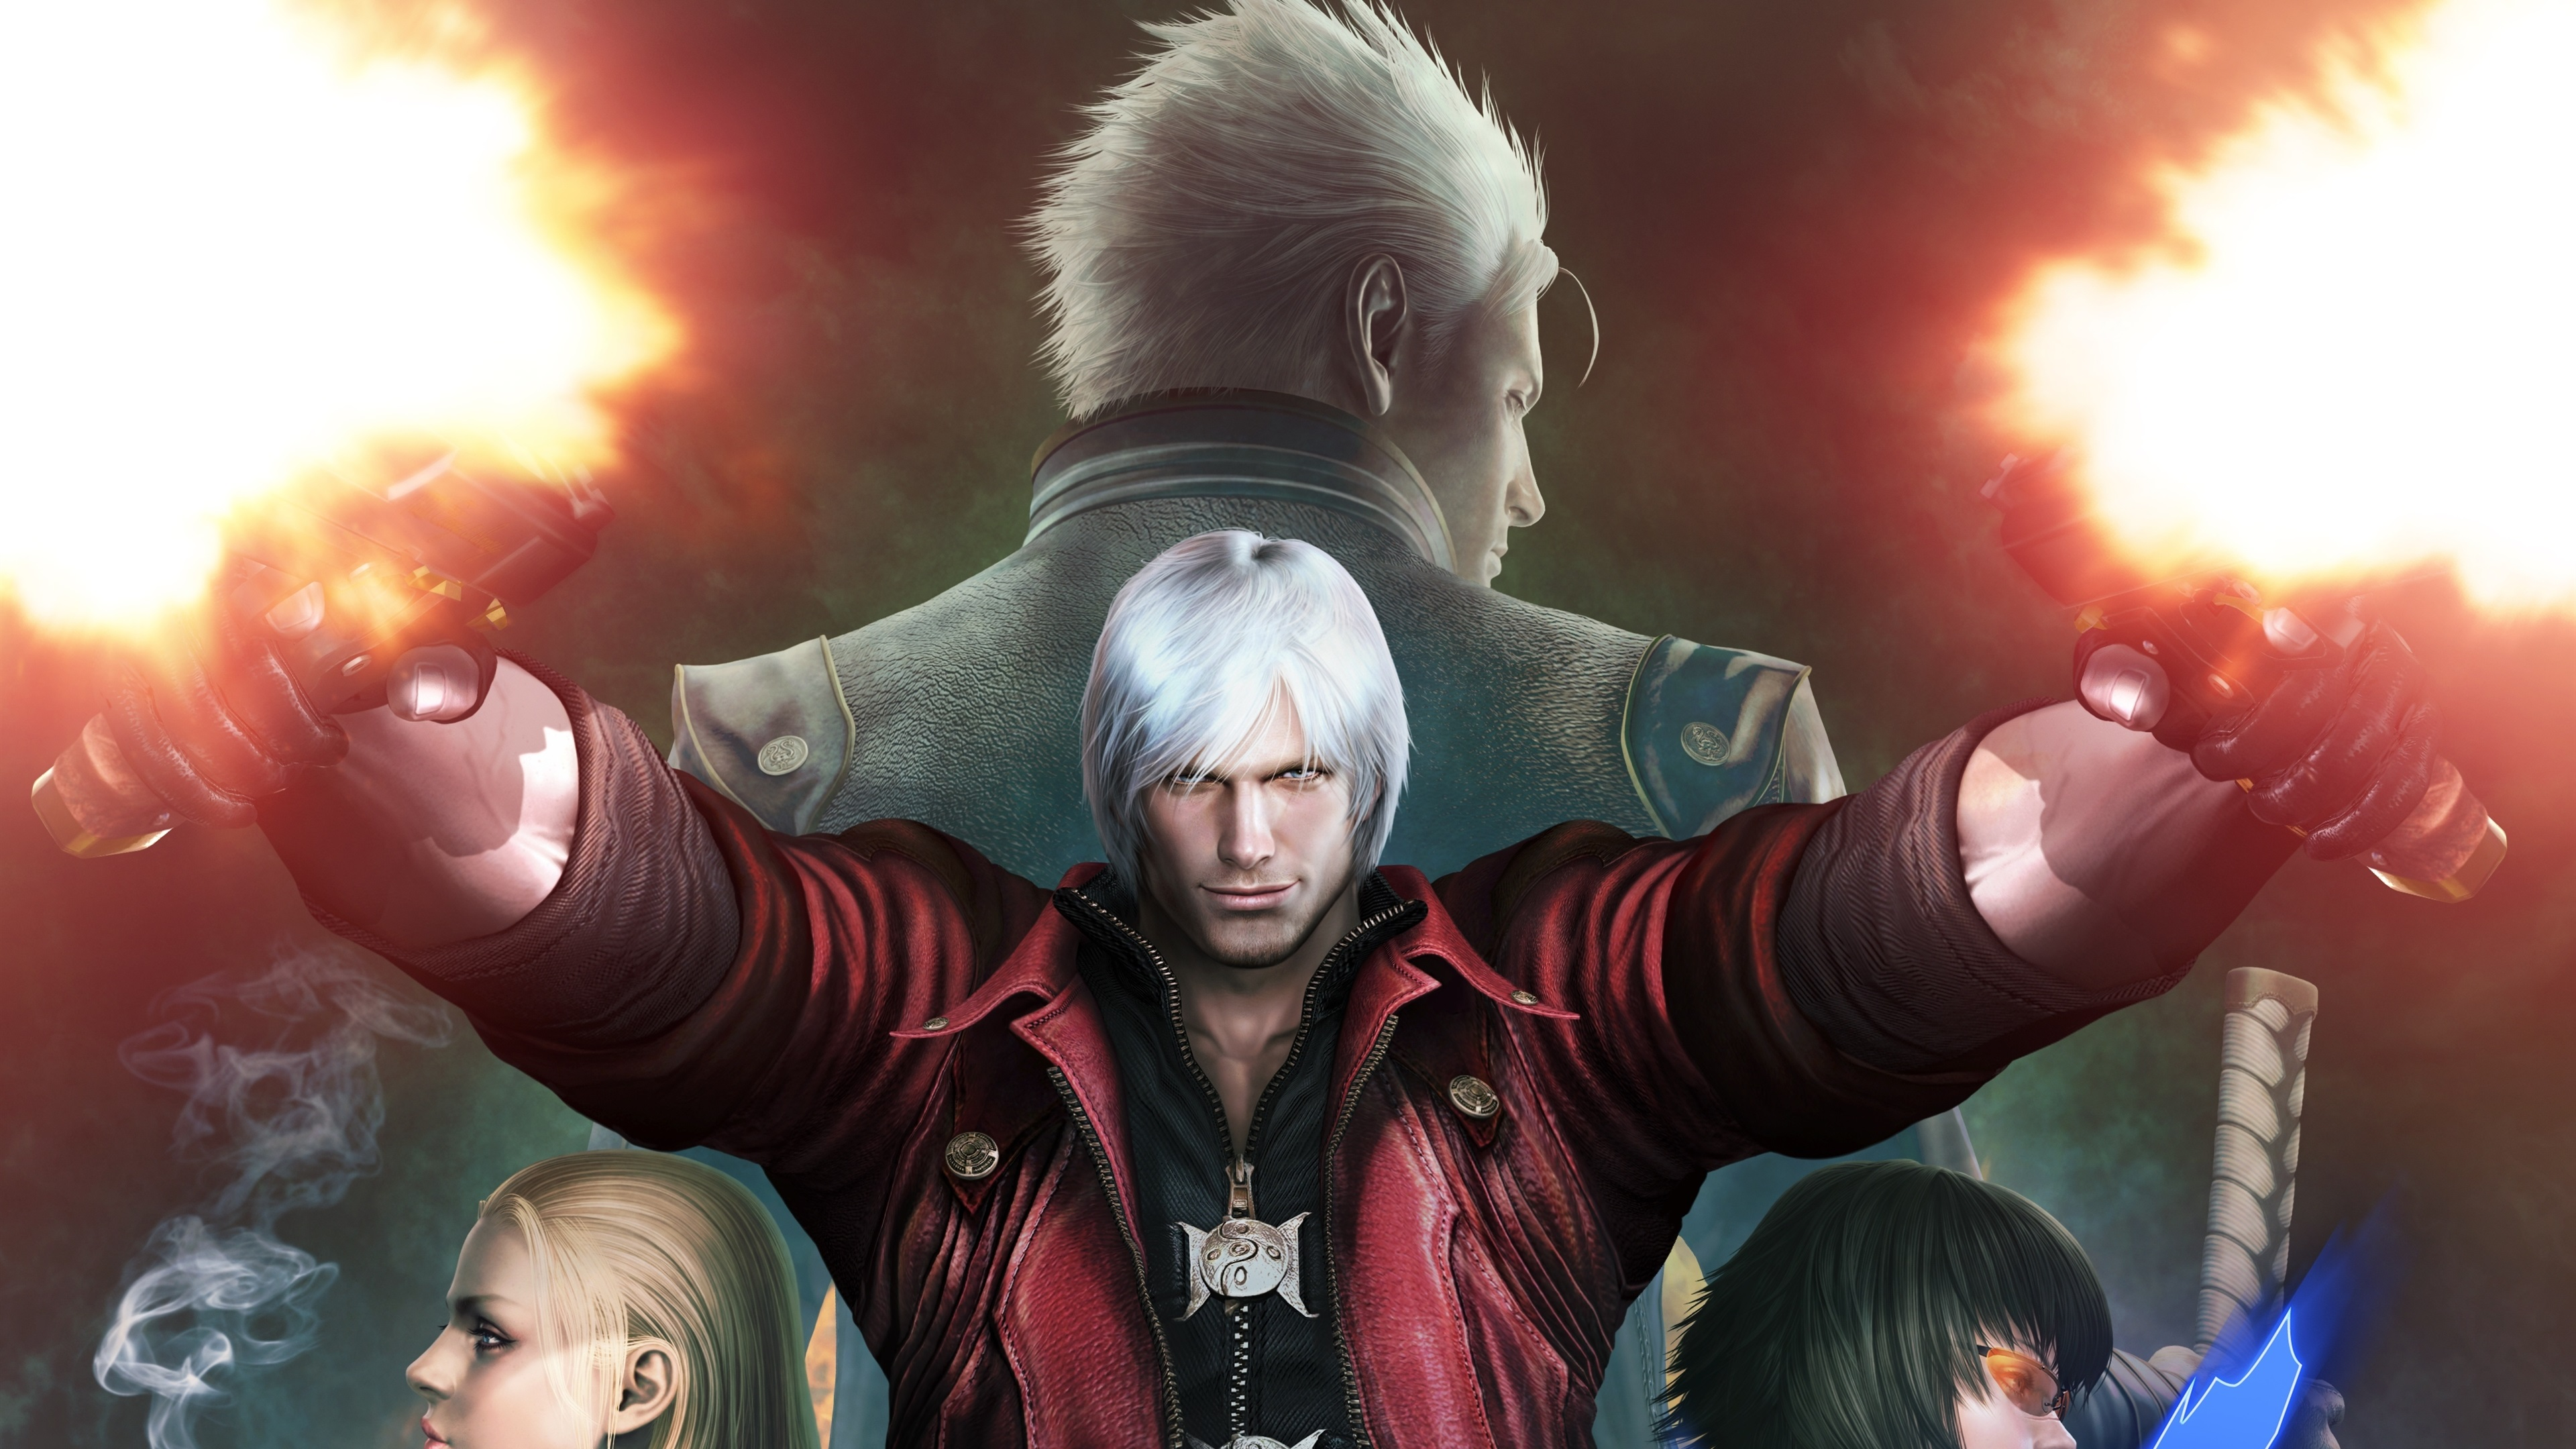 Wallpaper Devil May Cry Game Hd 3840x2160 Uhd 4k Picture Image